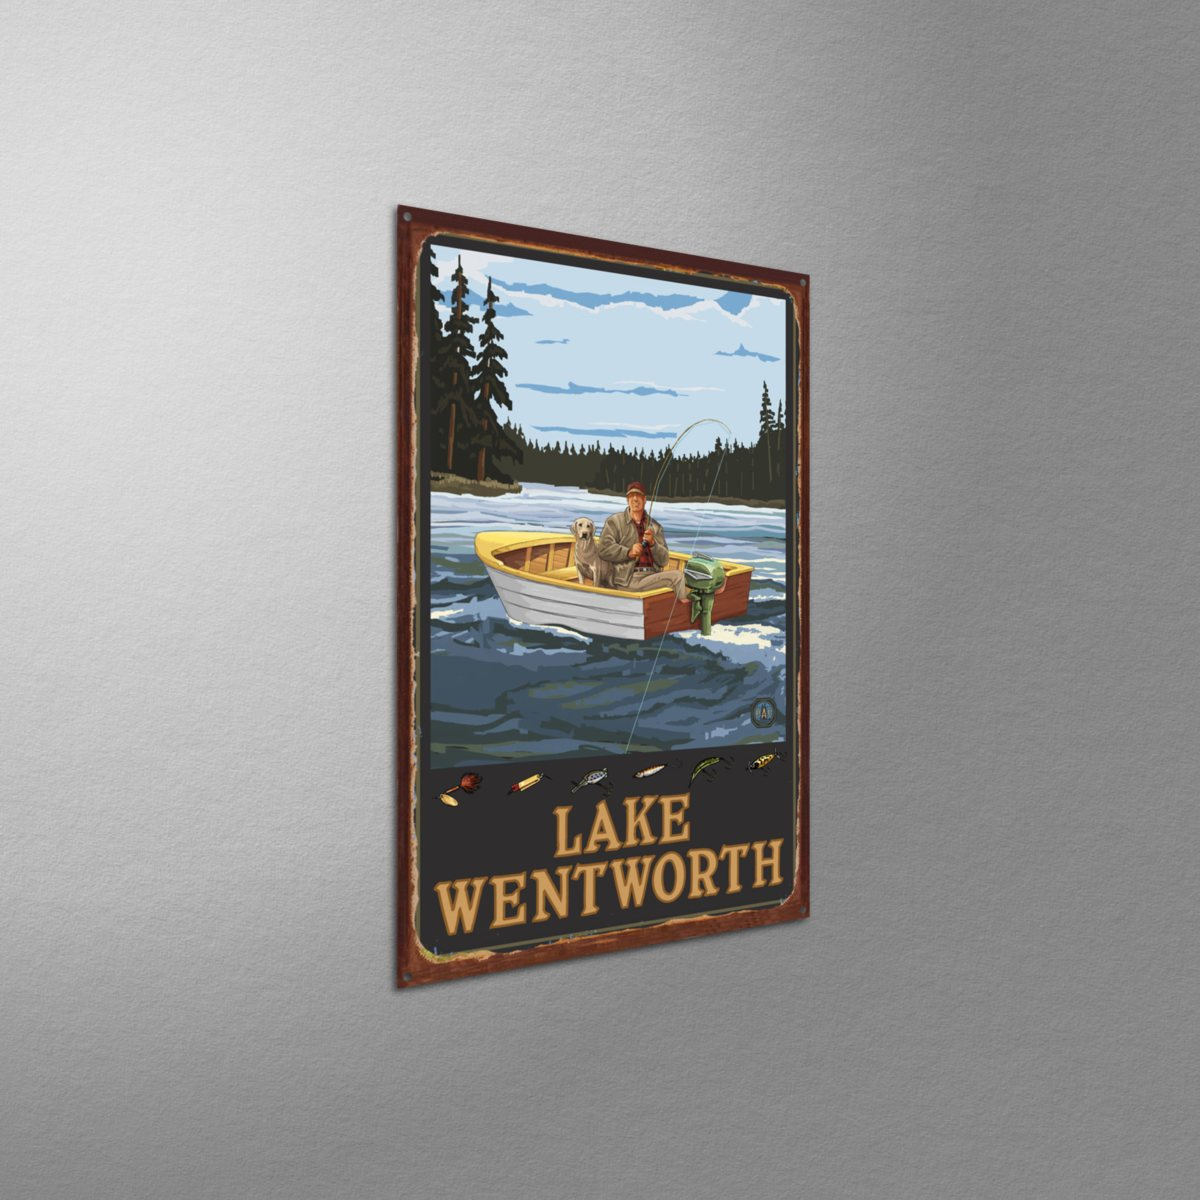 Lanquist 11 by 17-Inch Northwest Art Mall New Hampshire Fishing Wall Artwork by Paul A